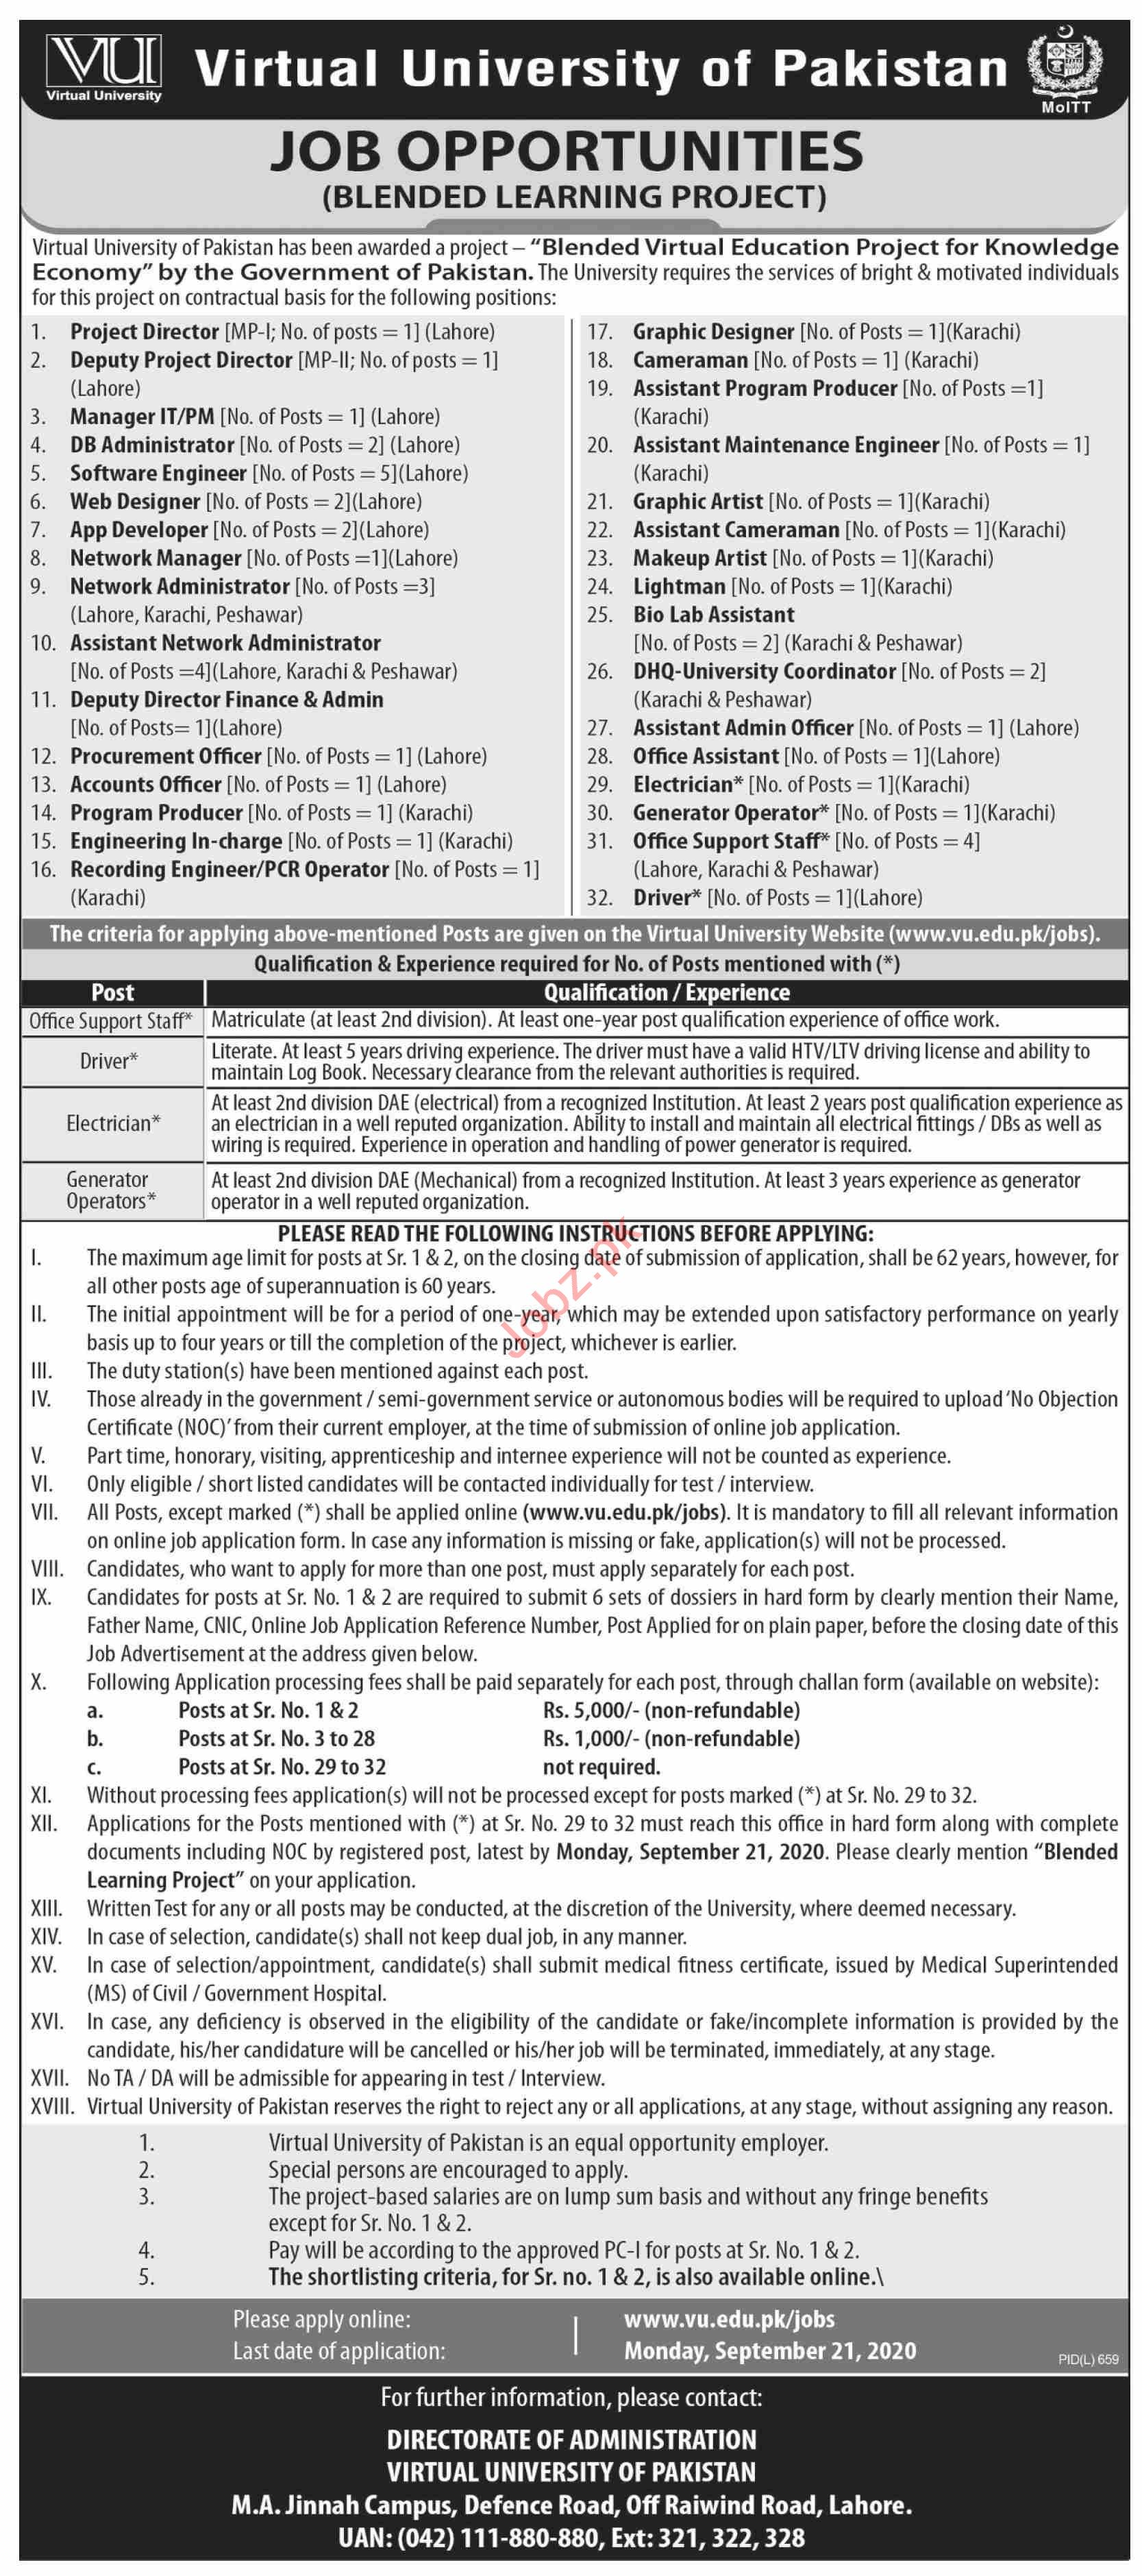 Virtual University of Pakistan VU Jobs 2020